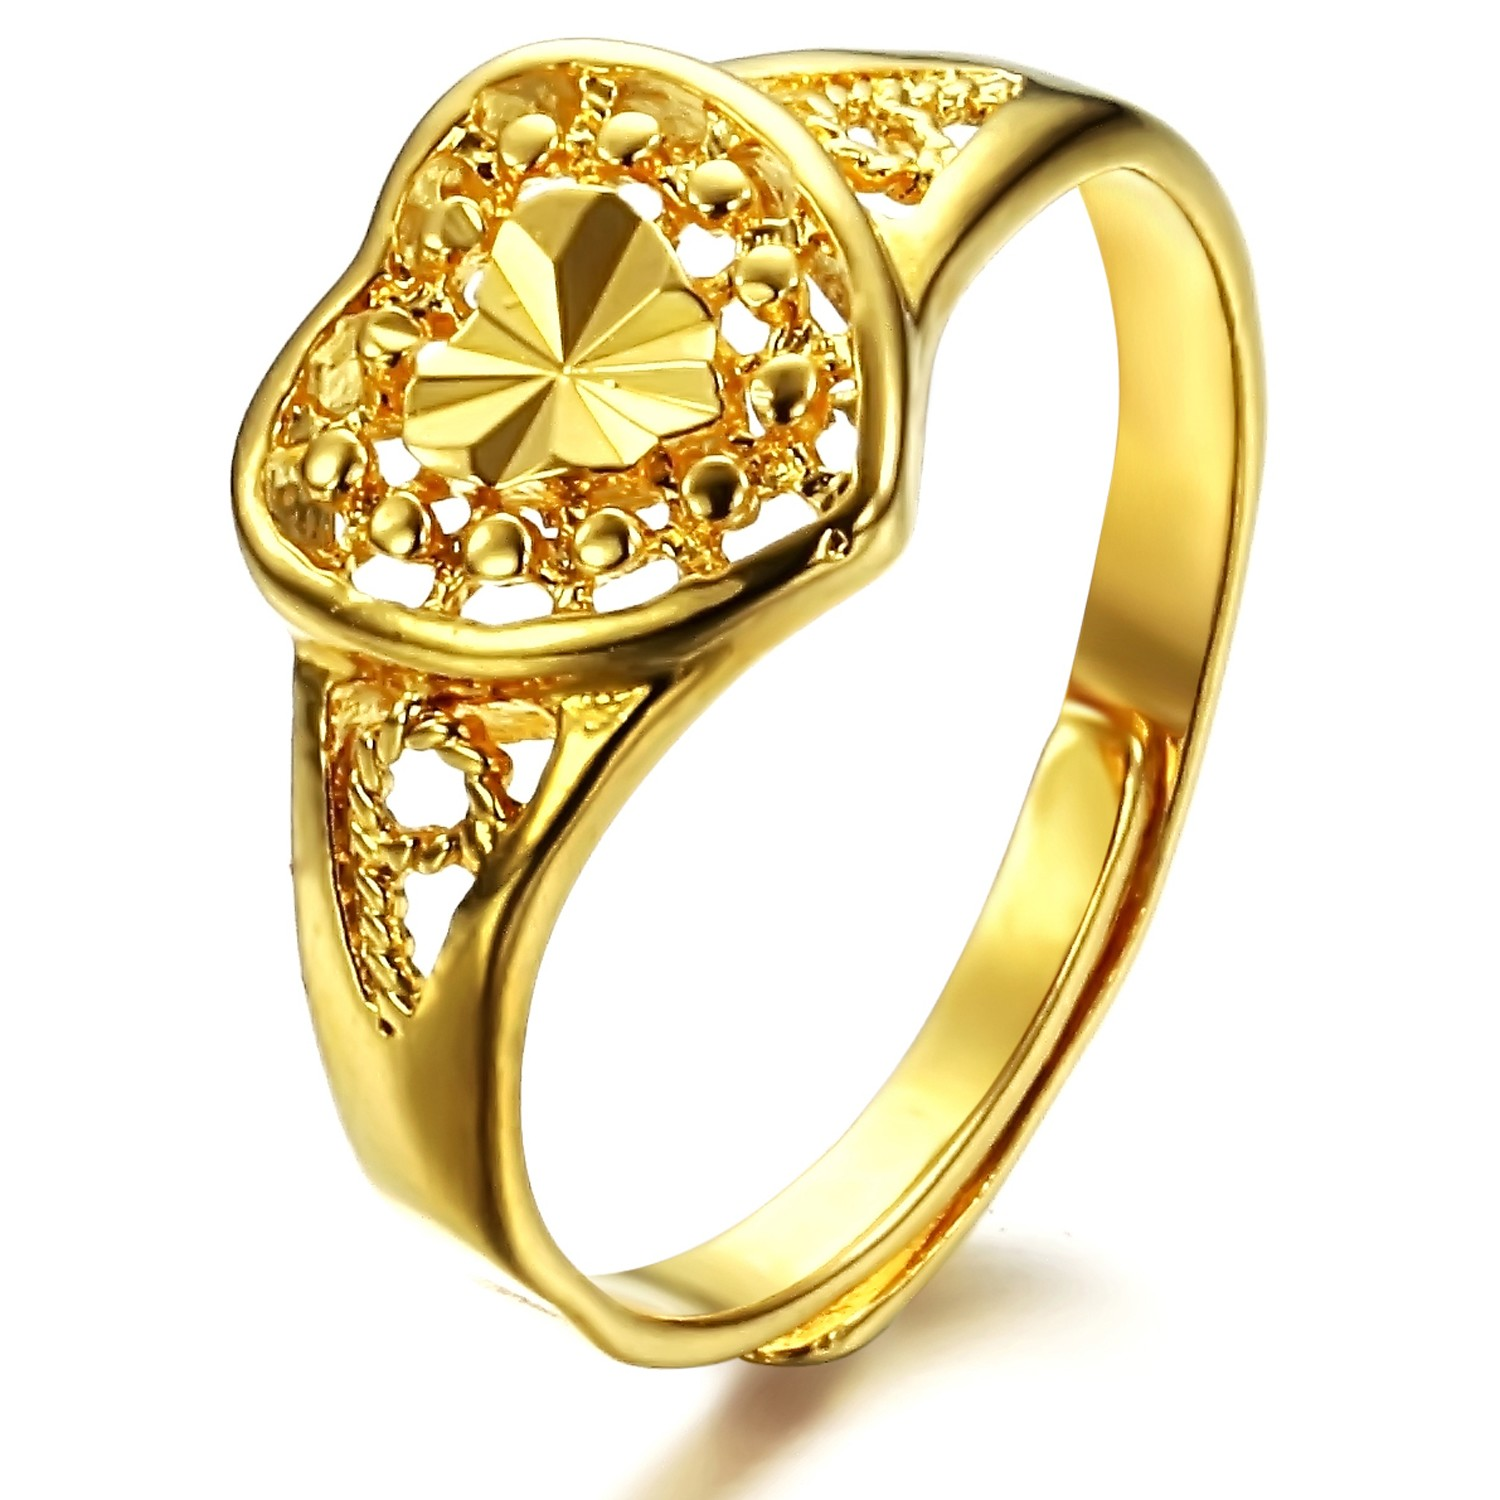 gold ring designs rings mostbeautifulthings for women loved golden